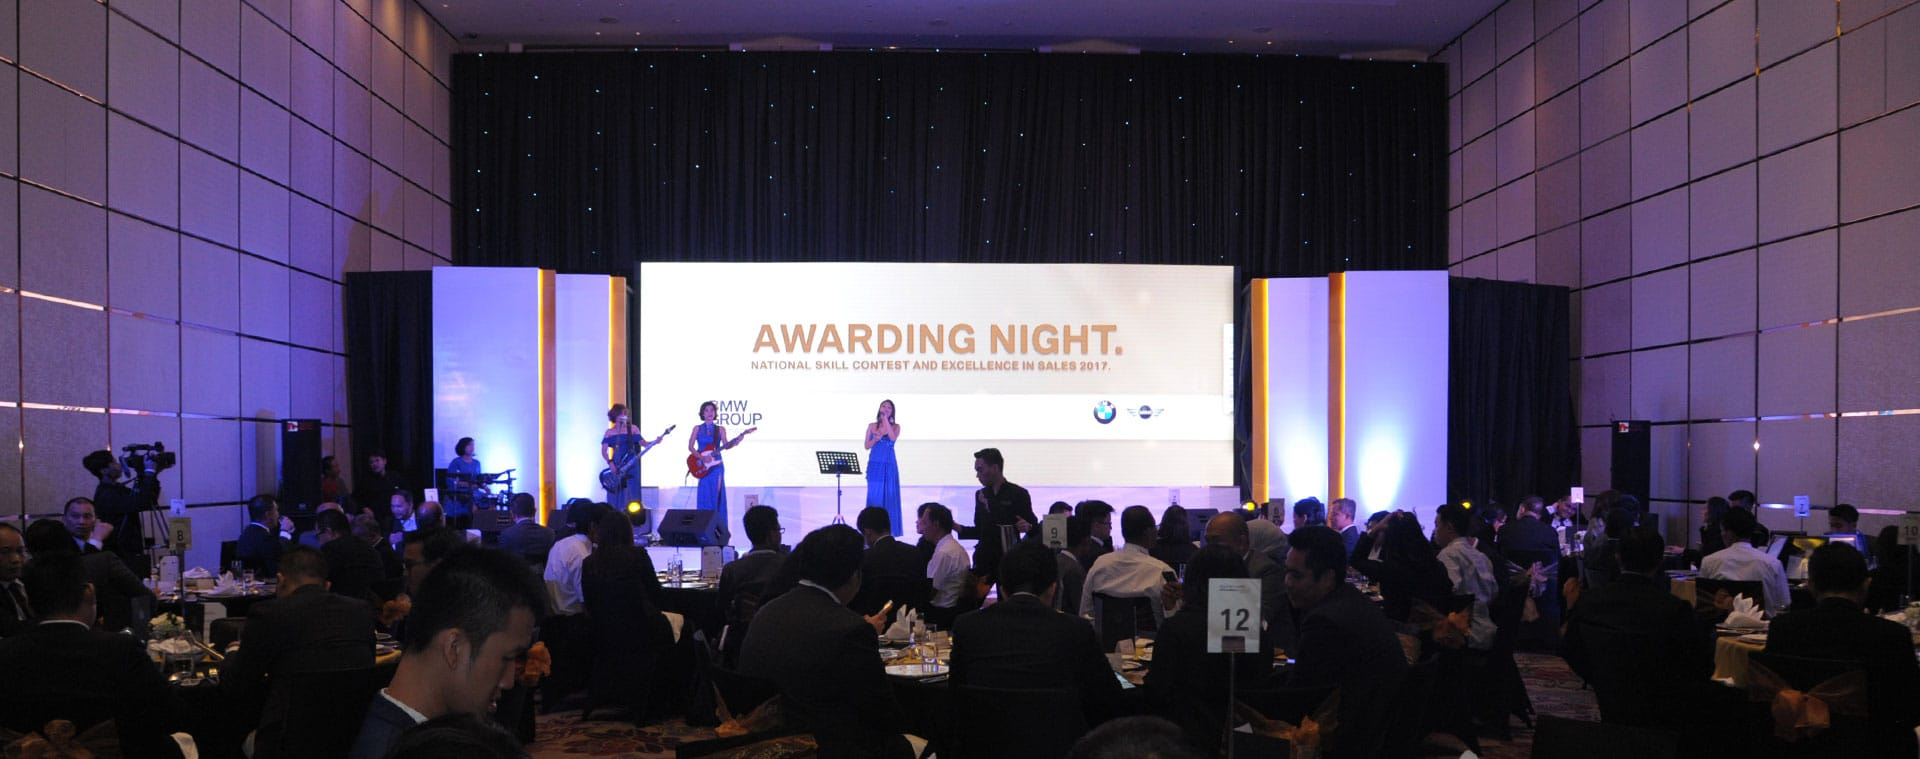 BMW Awarding Night Event